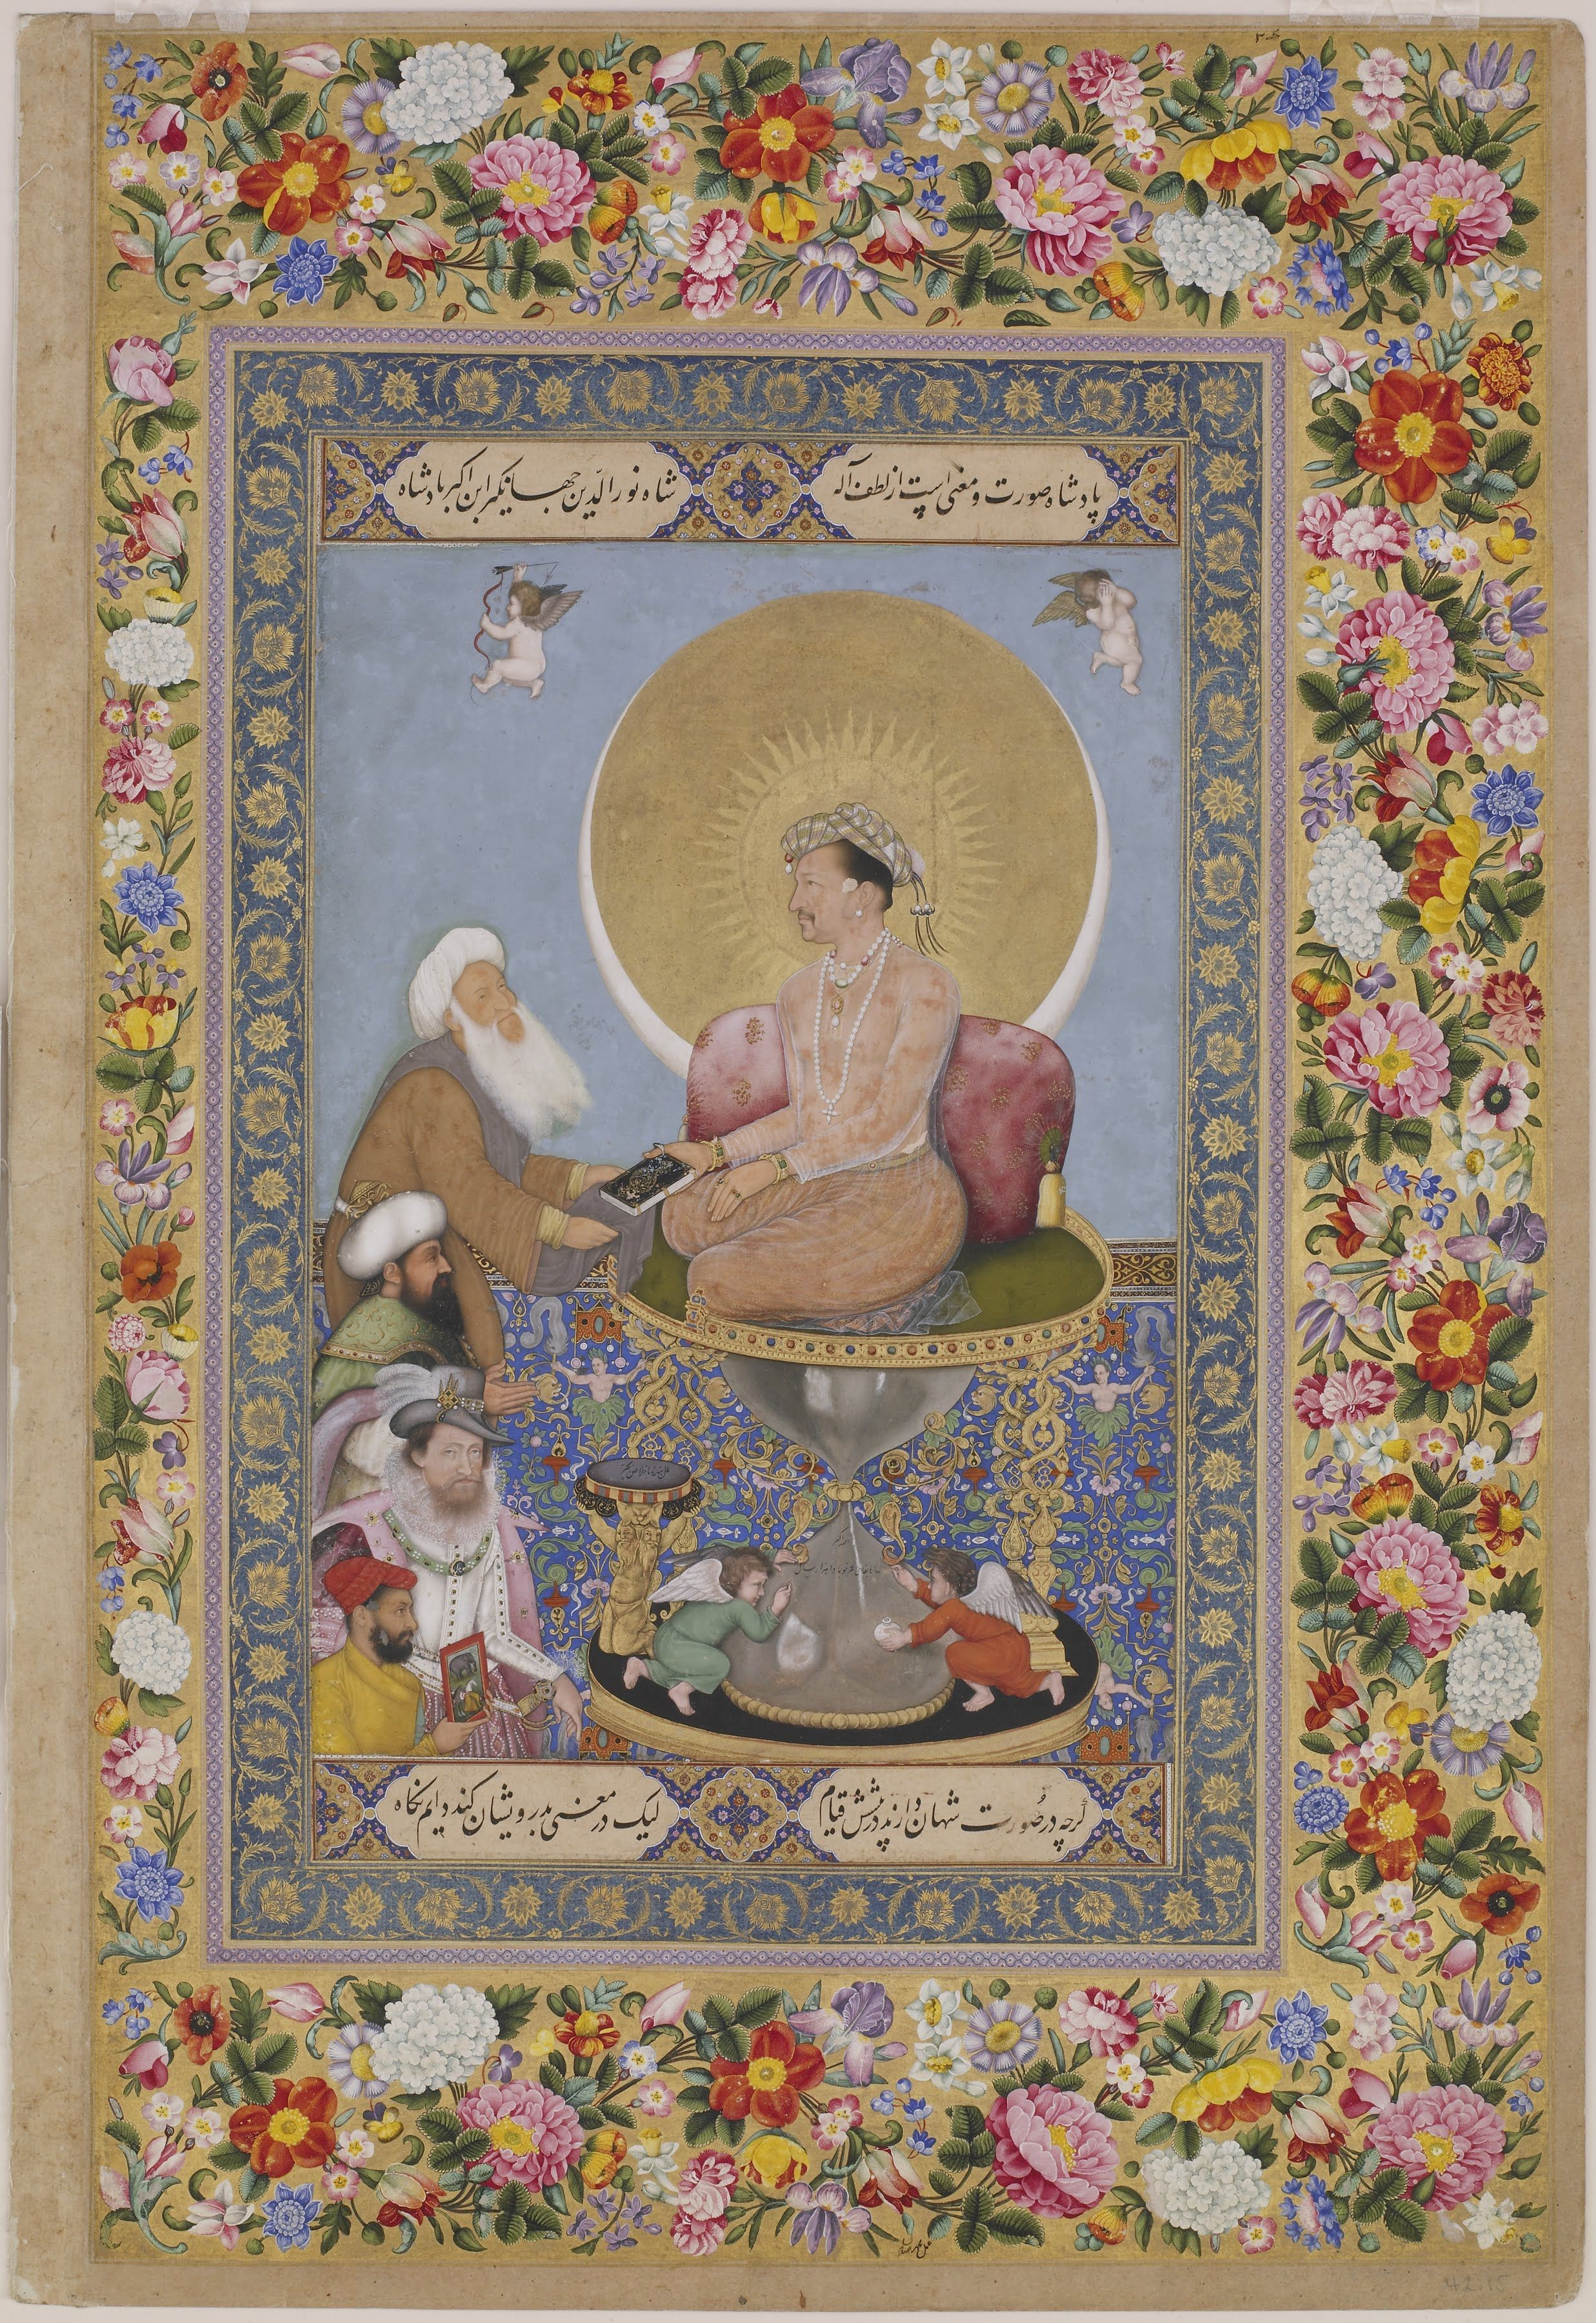 Watercolor art history - Find This Pin And More On Ap Art History 250 West Central Asia